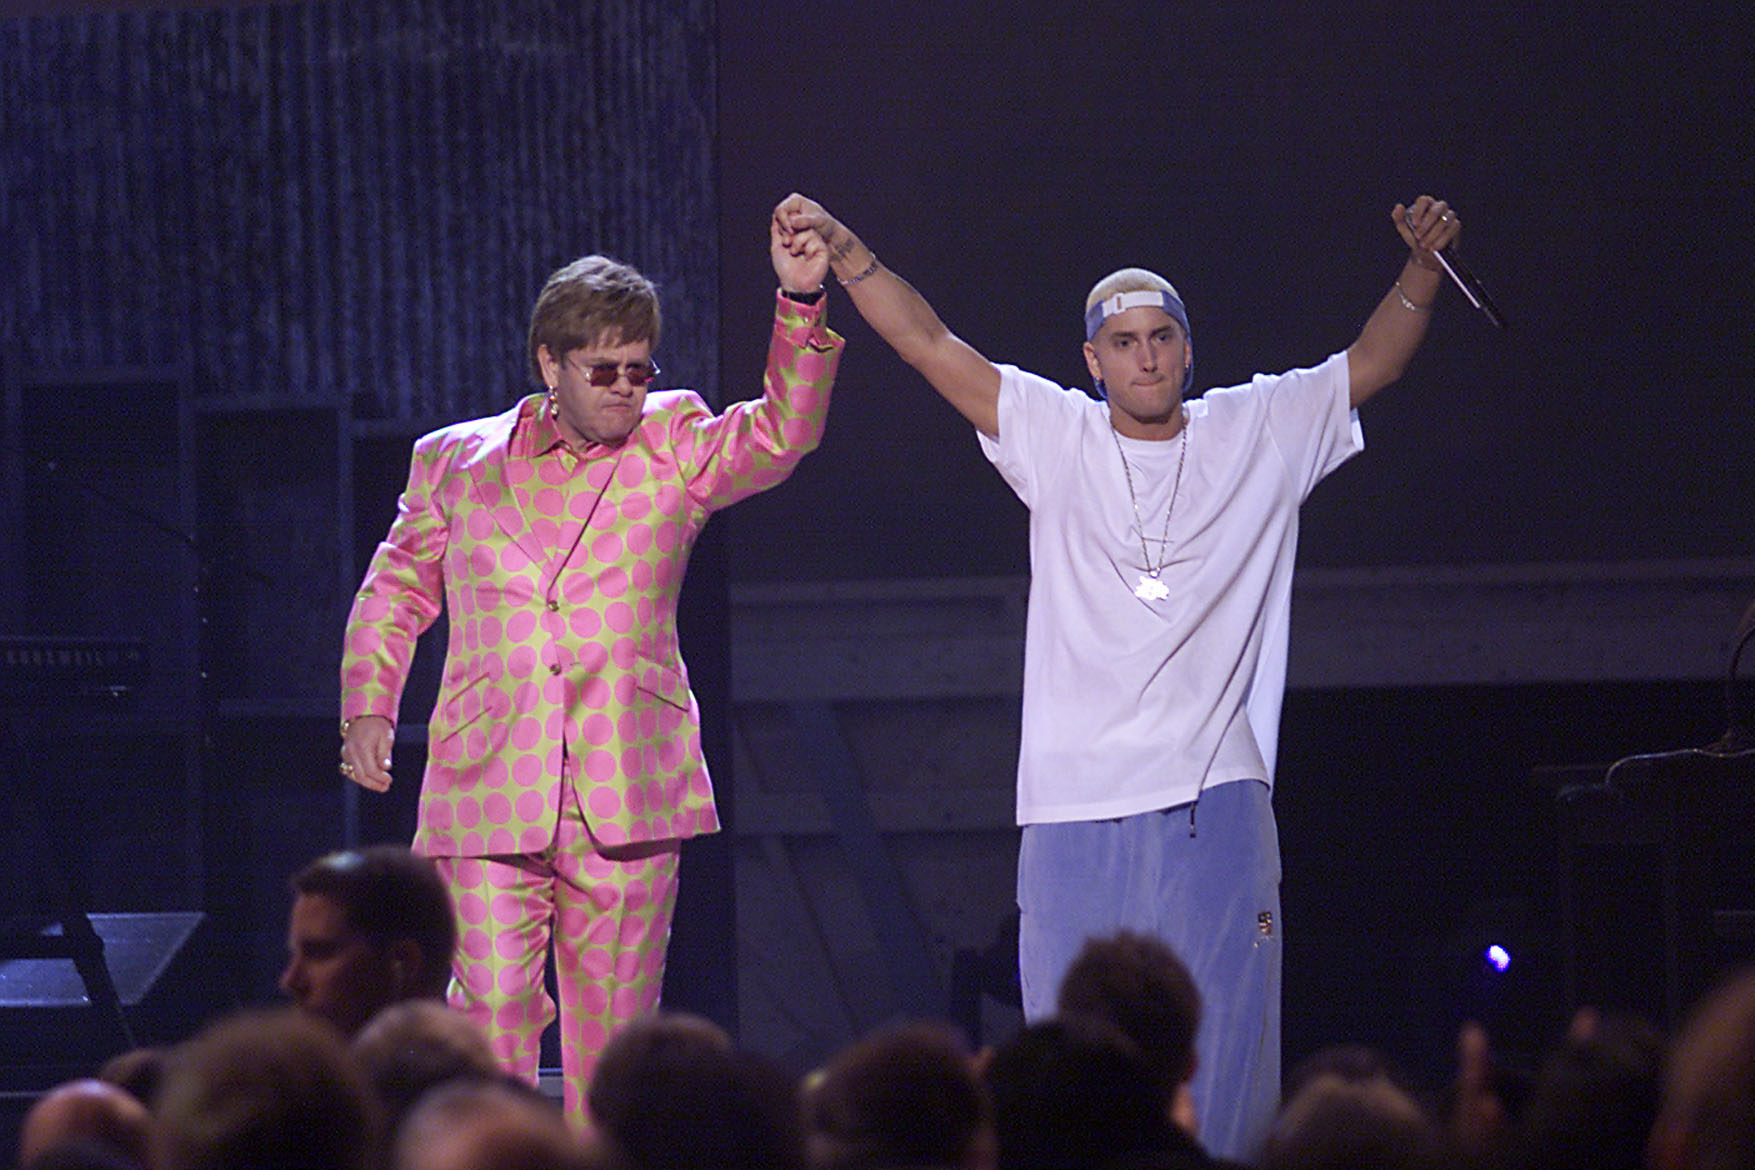 British singer Elton John (left) and American rap vocalist Eminem hold hands after their performance at The 43rd Annual Grammy Awards held at Staples Center, Los Angeles, California, February 21, 2001. (Photo by Frank Micelotta/Getty Images)